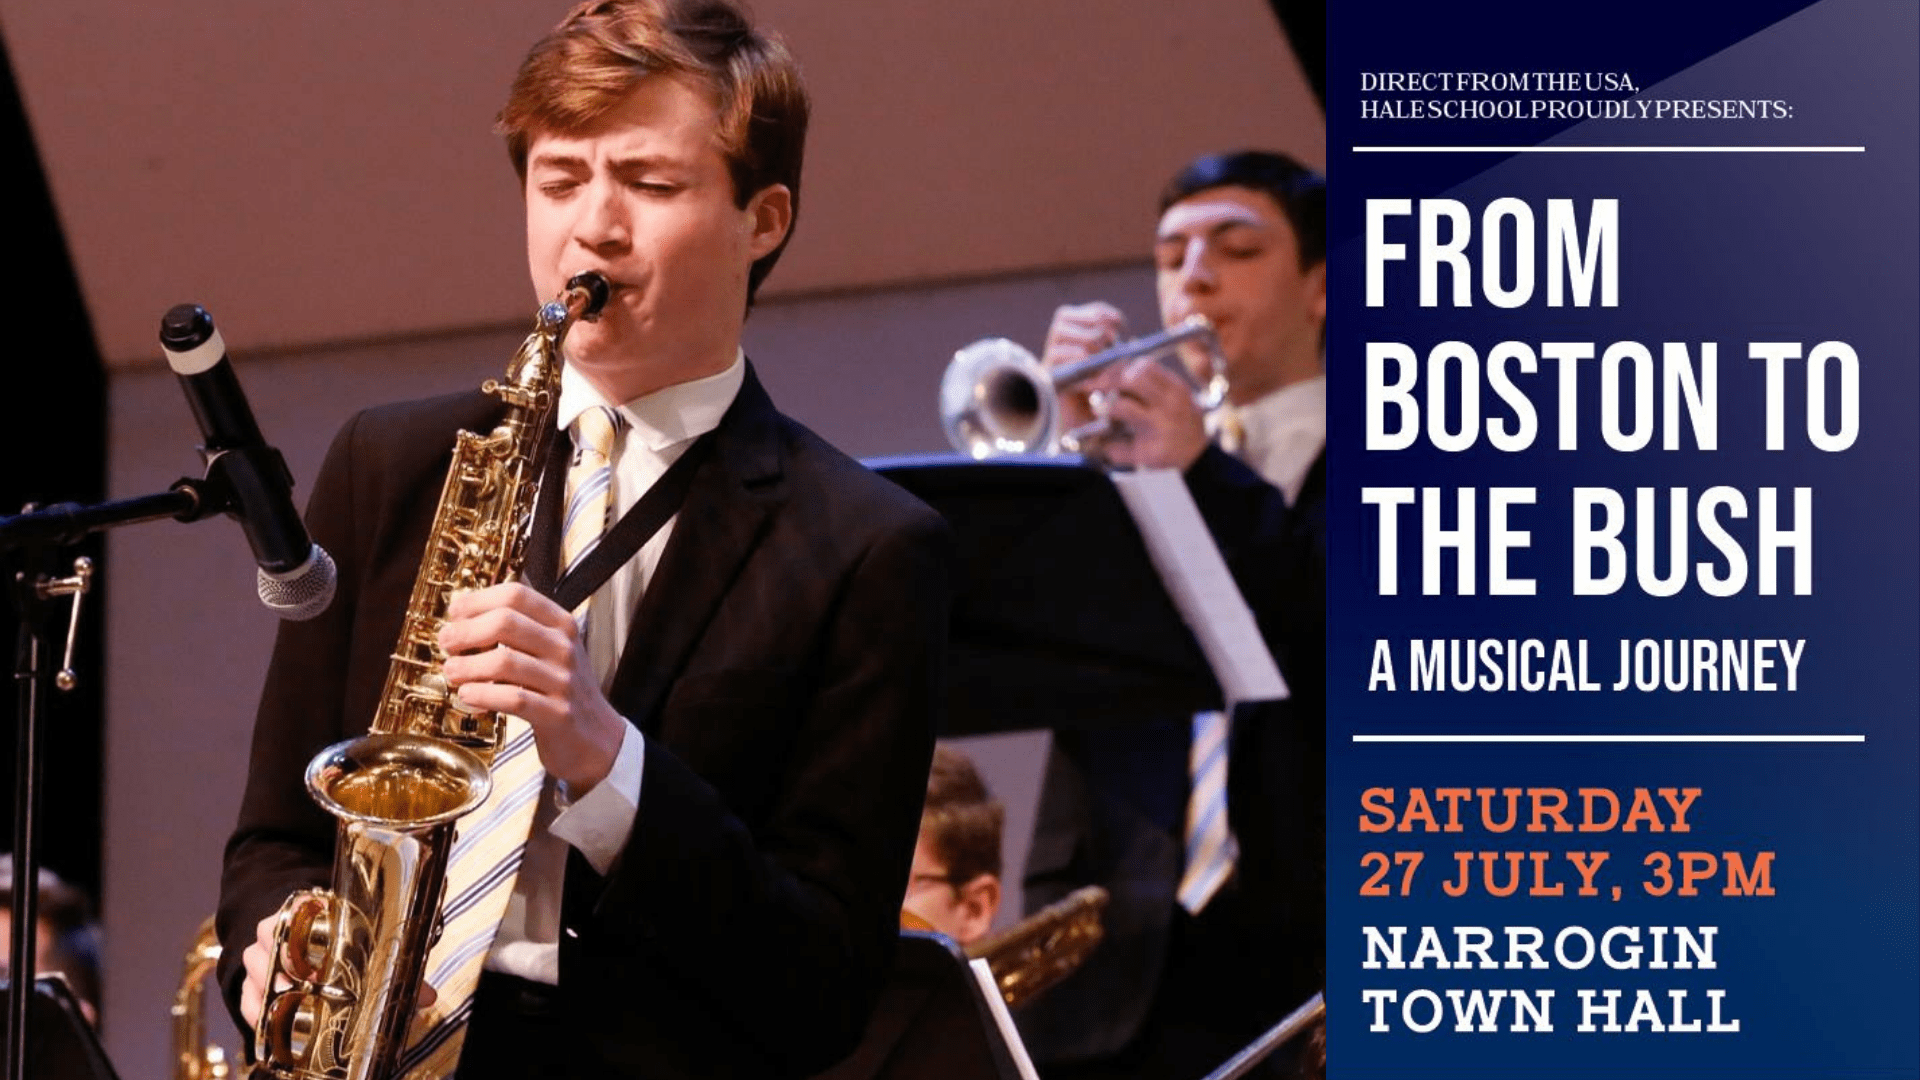 Hale School presents 'From Boston to the Bush: A Musical Journey'